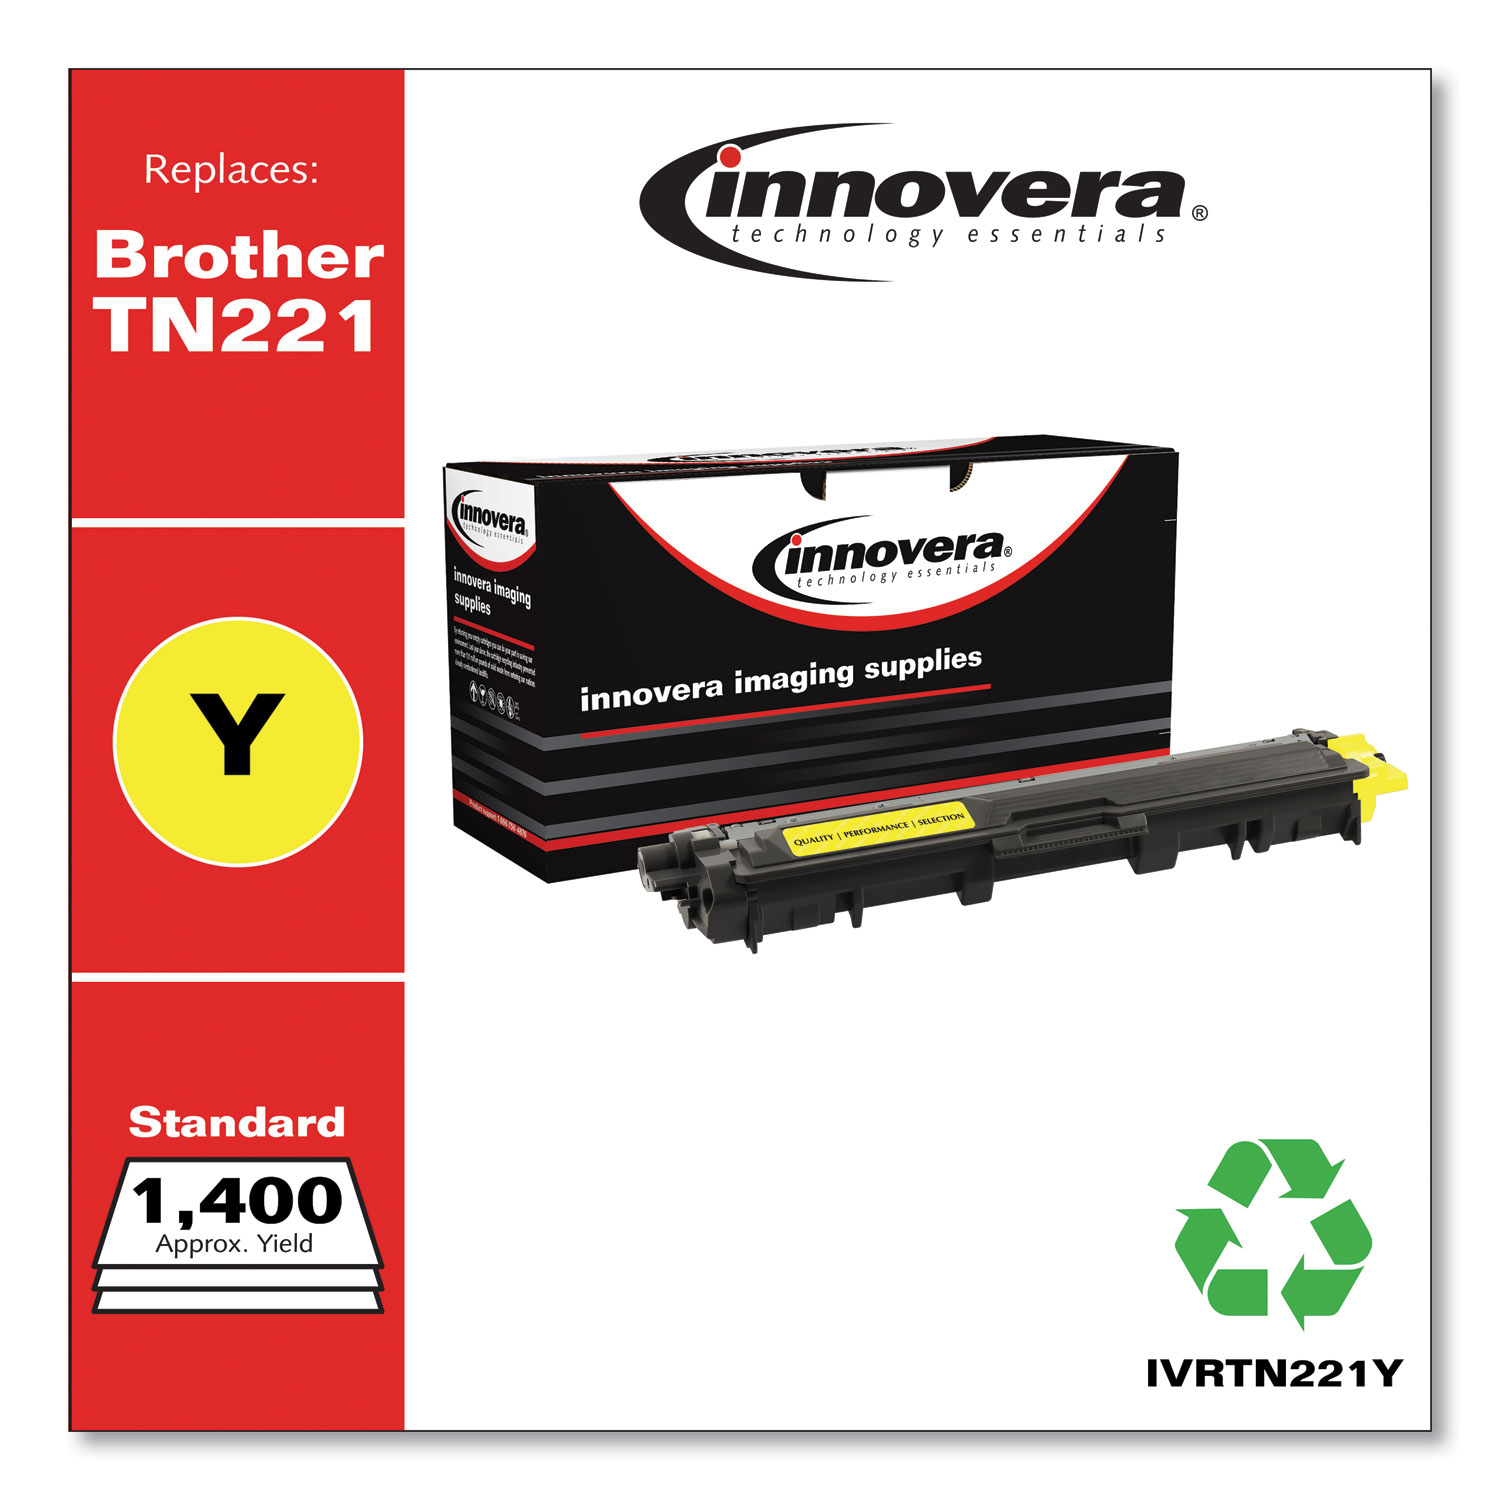 Remanufactured Yellow Toner, Replacement for Brother TN221Y, 1,400 Page-Yield IVRTN221Y